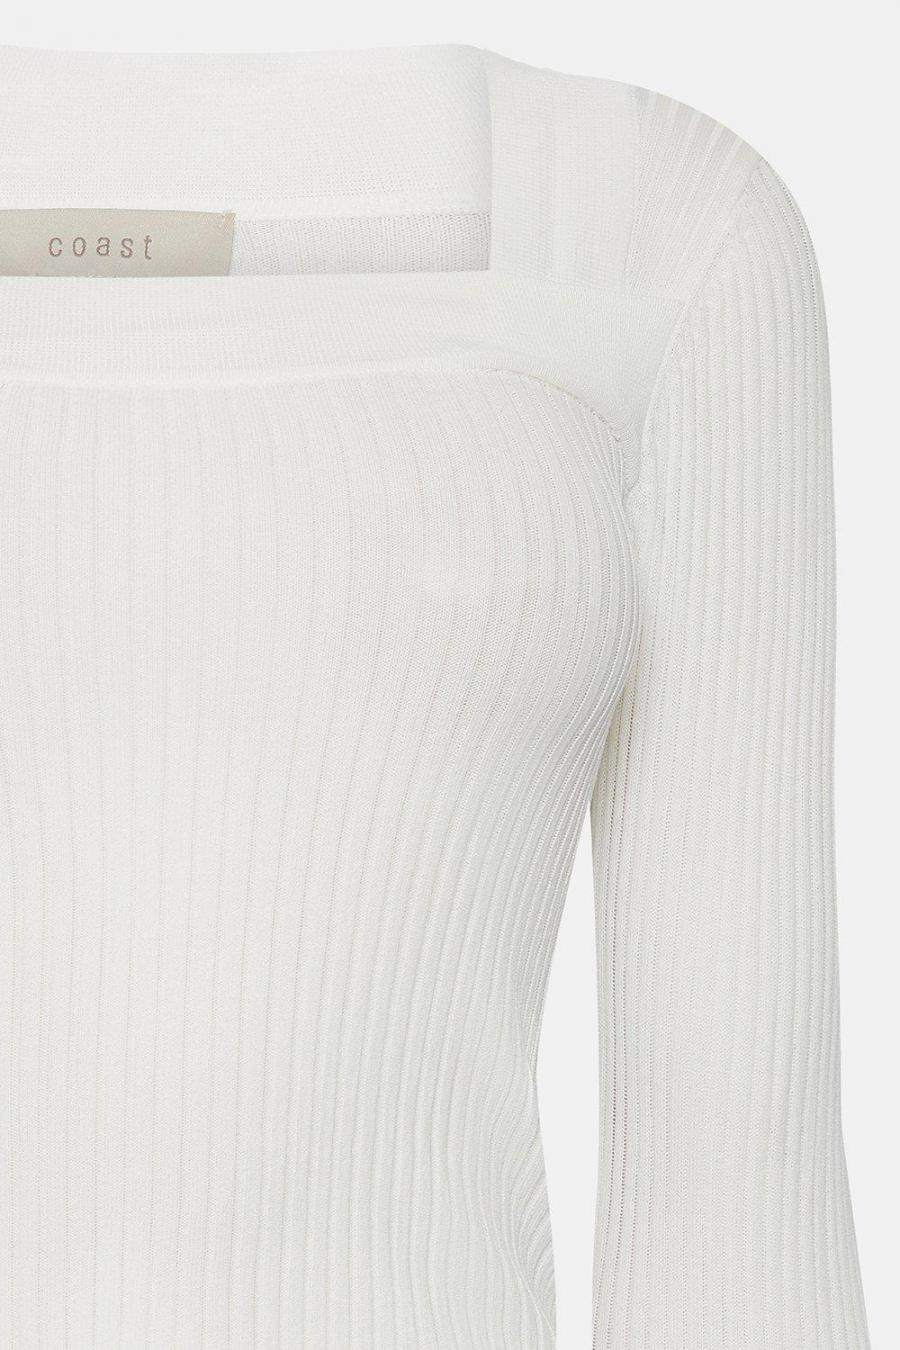 Coast Off The Shoulder | Womens Square Neck Knitted Top Ivory